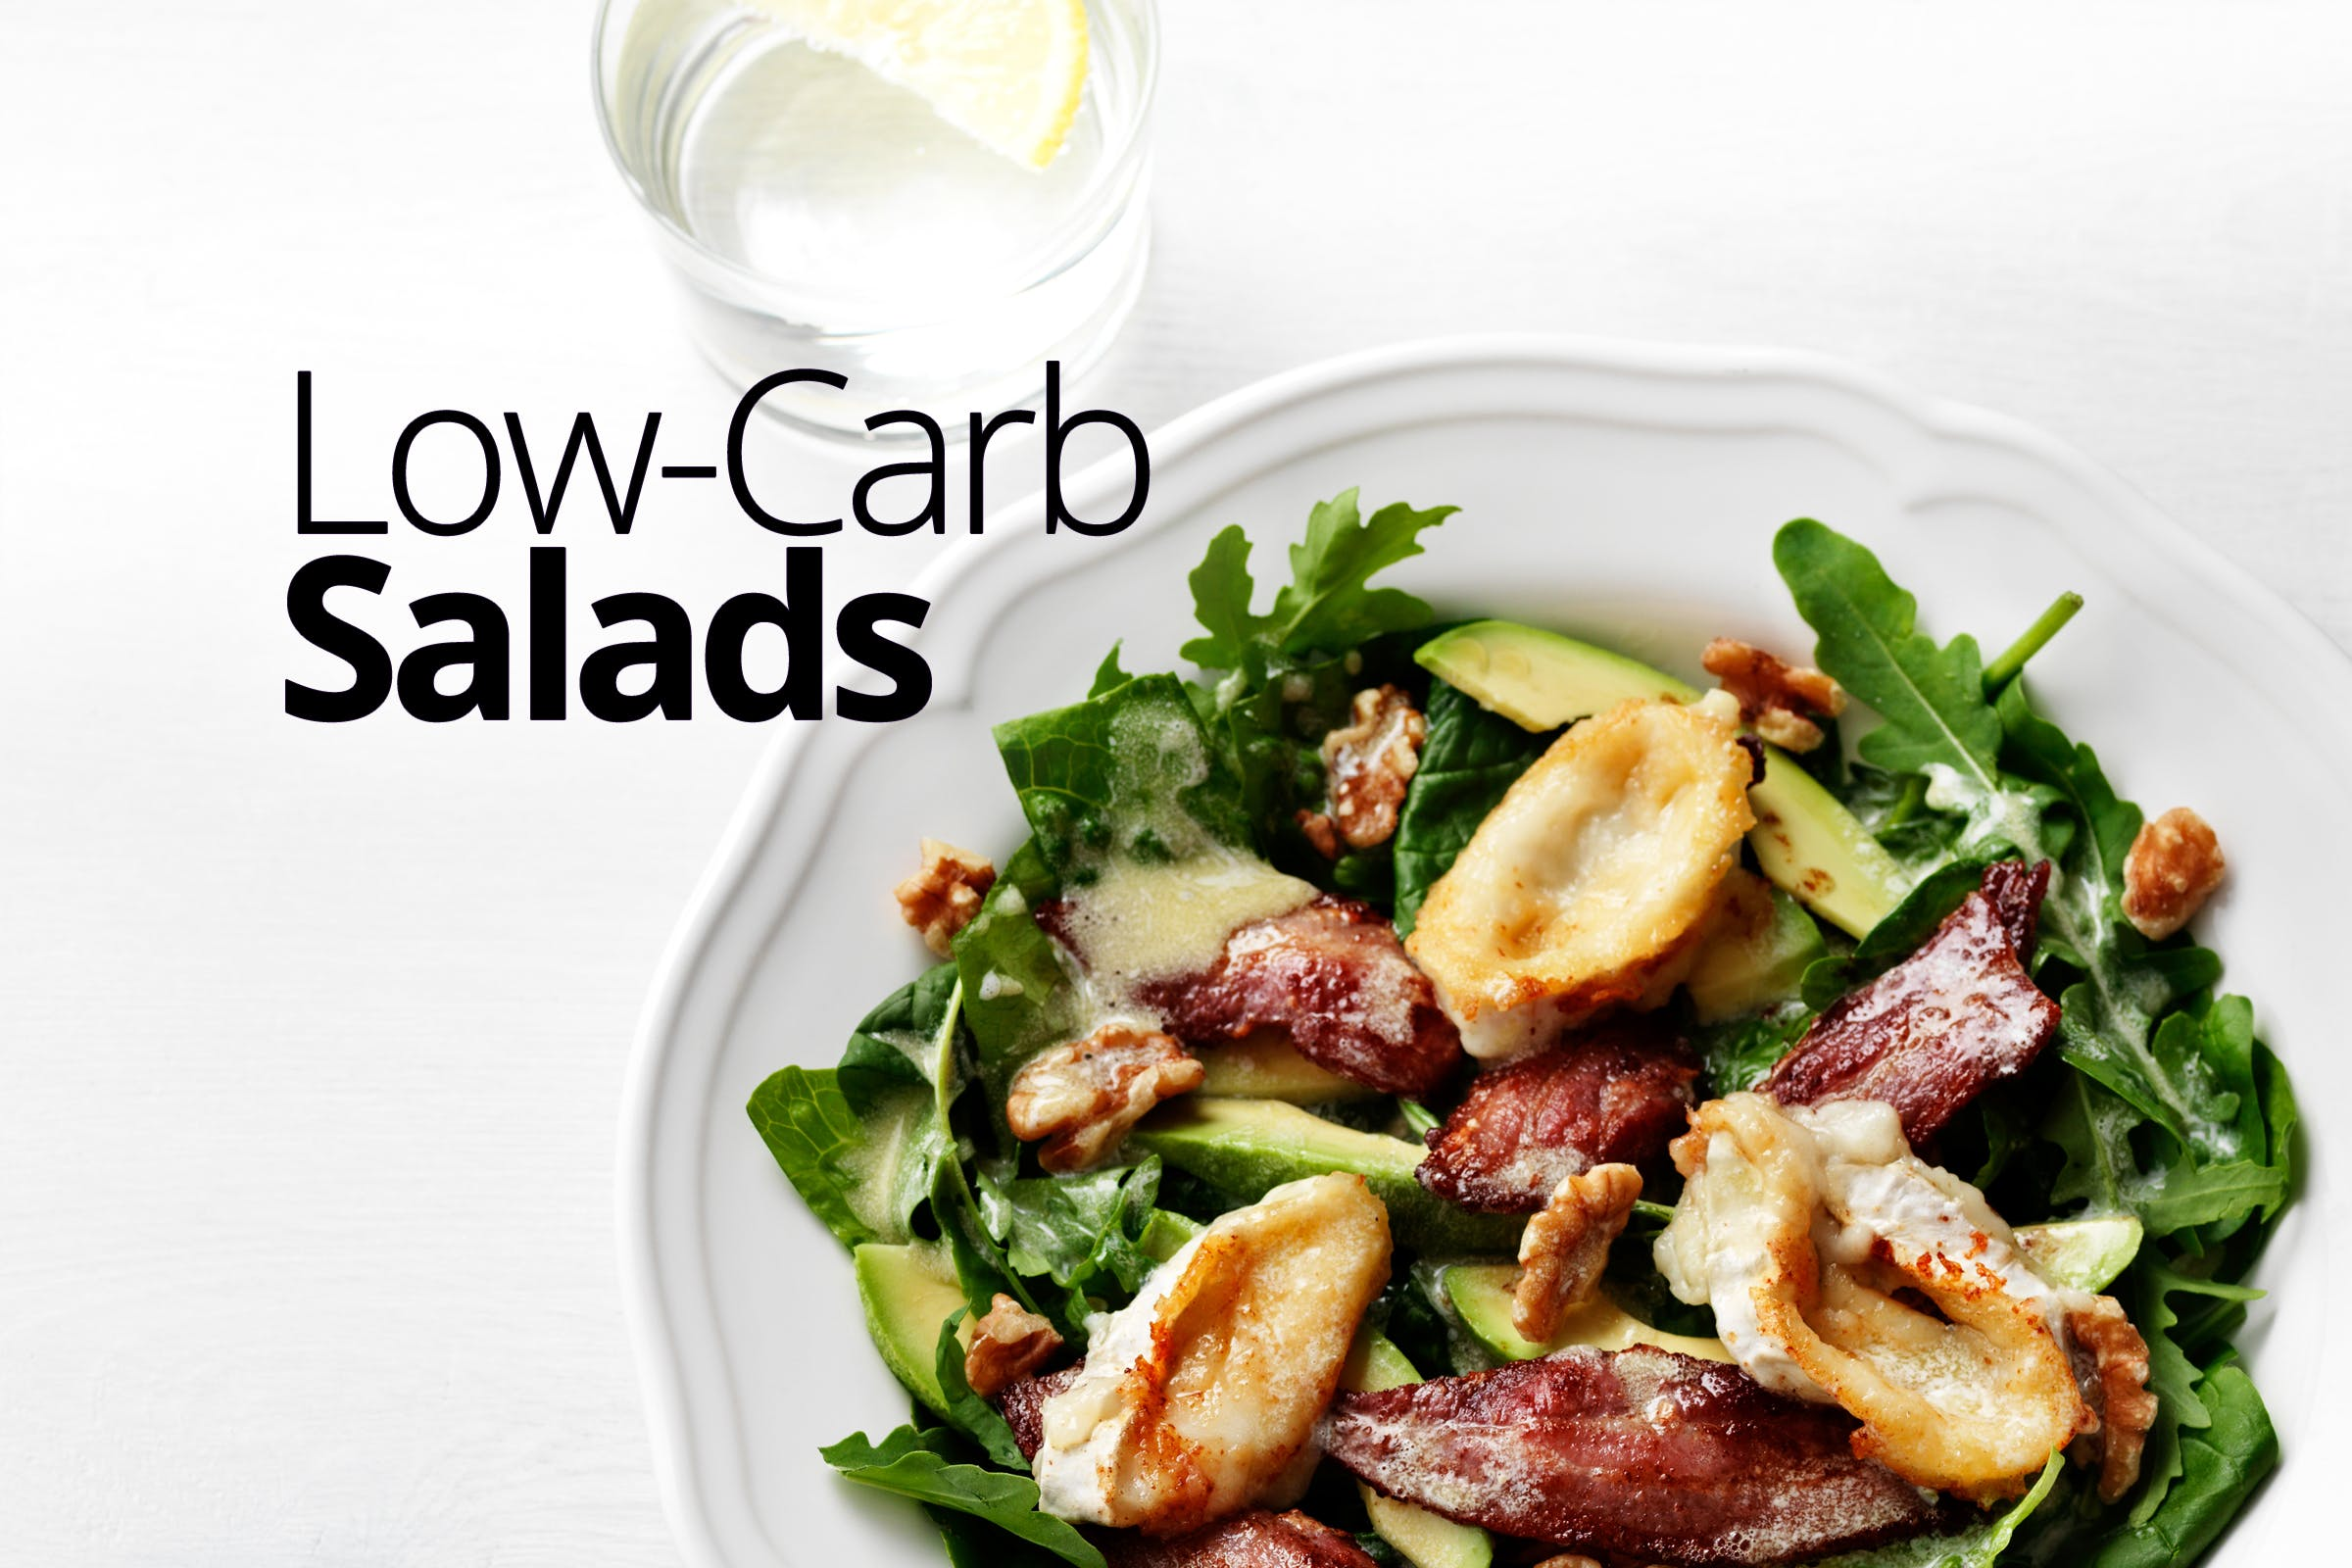 LowCarbSalads2